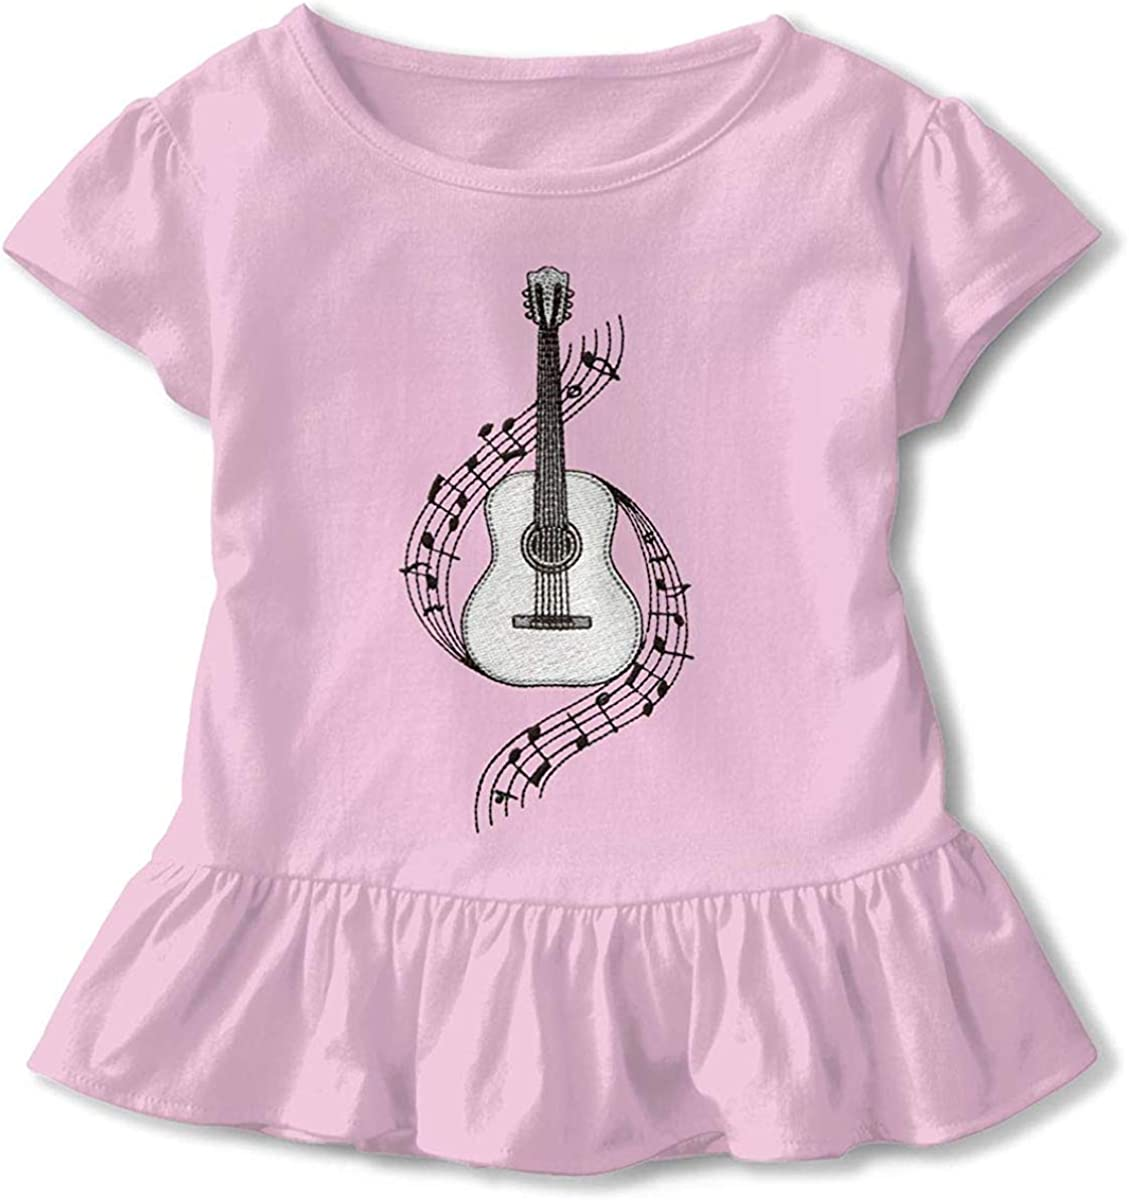 Guitar Music Retro 2-6 Years Old Child Girls Casual Short Sleeve T-Shirts Pink